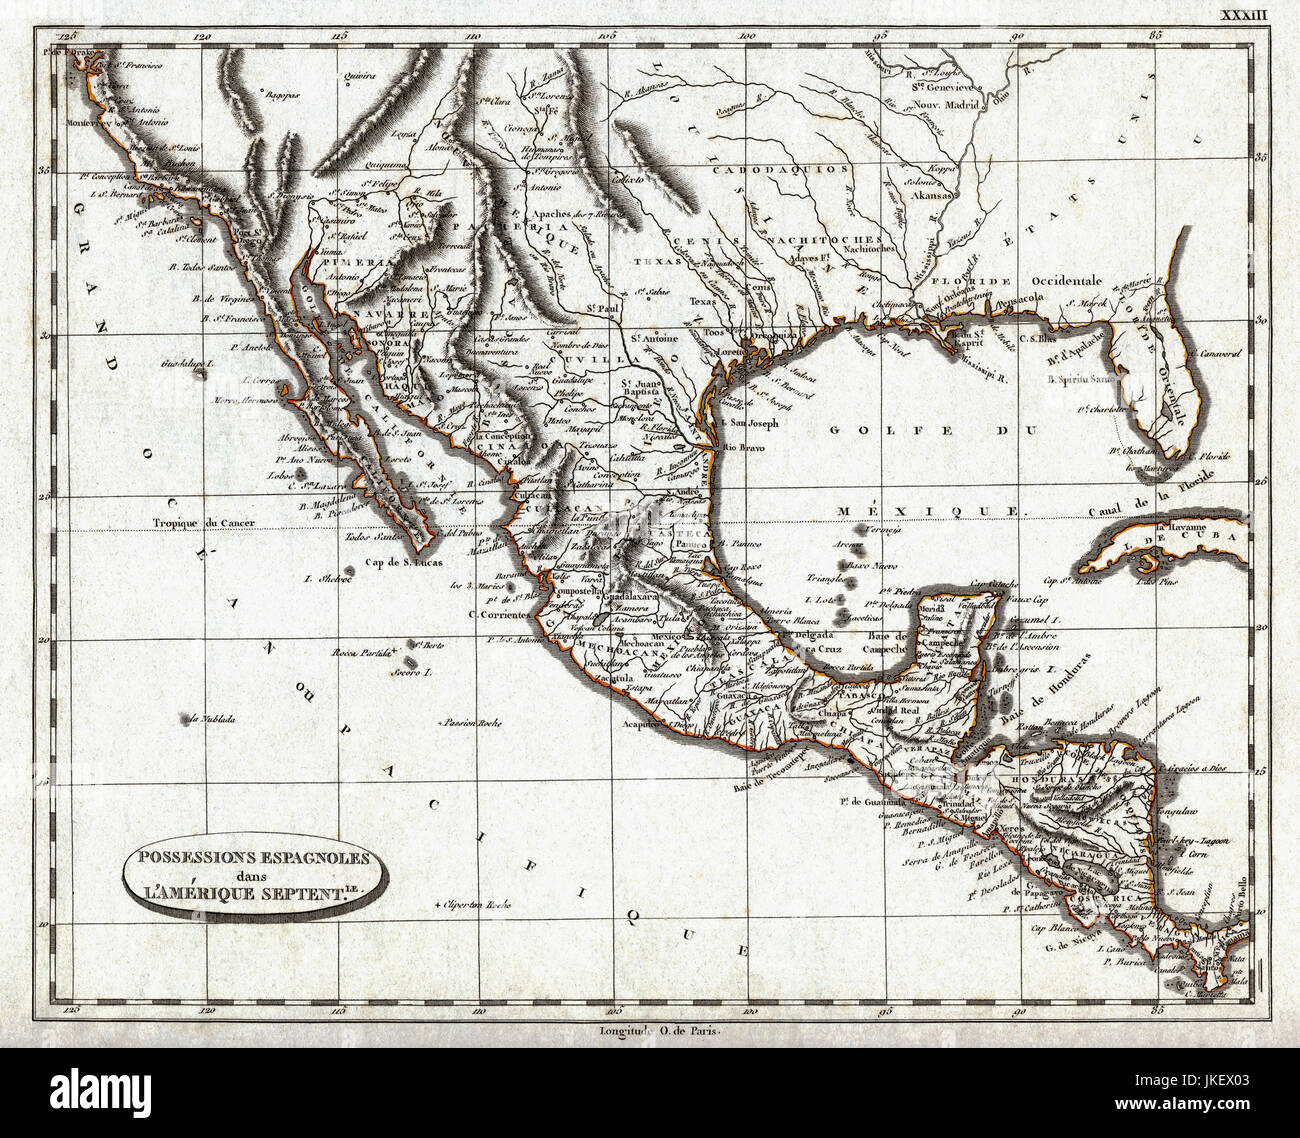 1804 pinkerton map of colonial spanish america including mexico california texas arizona florida guatemala